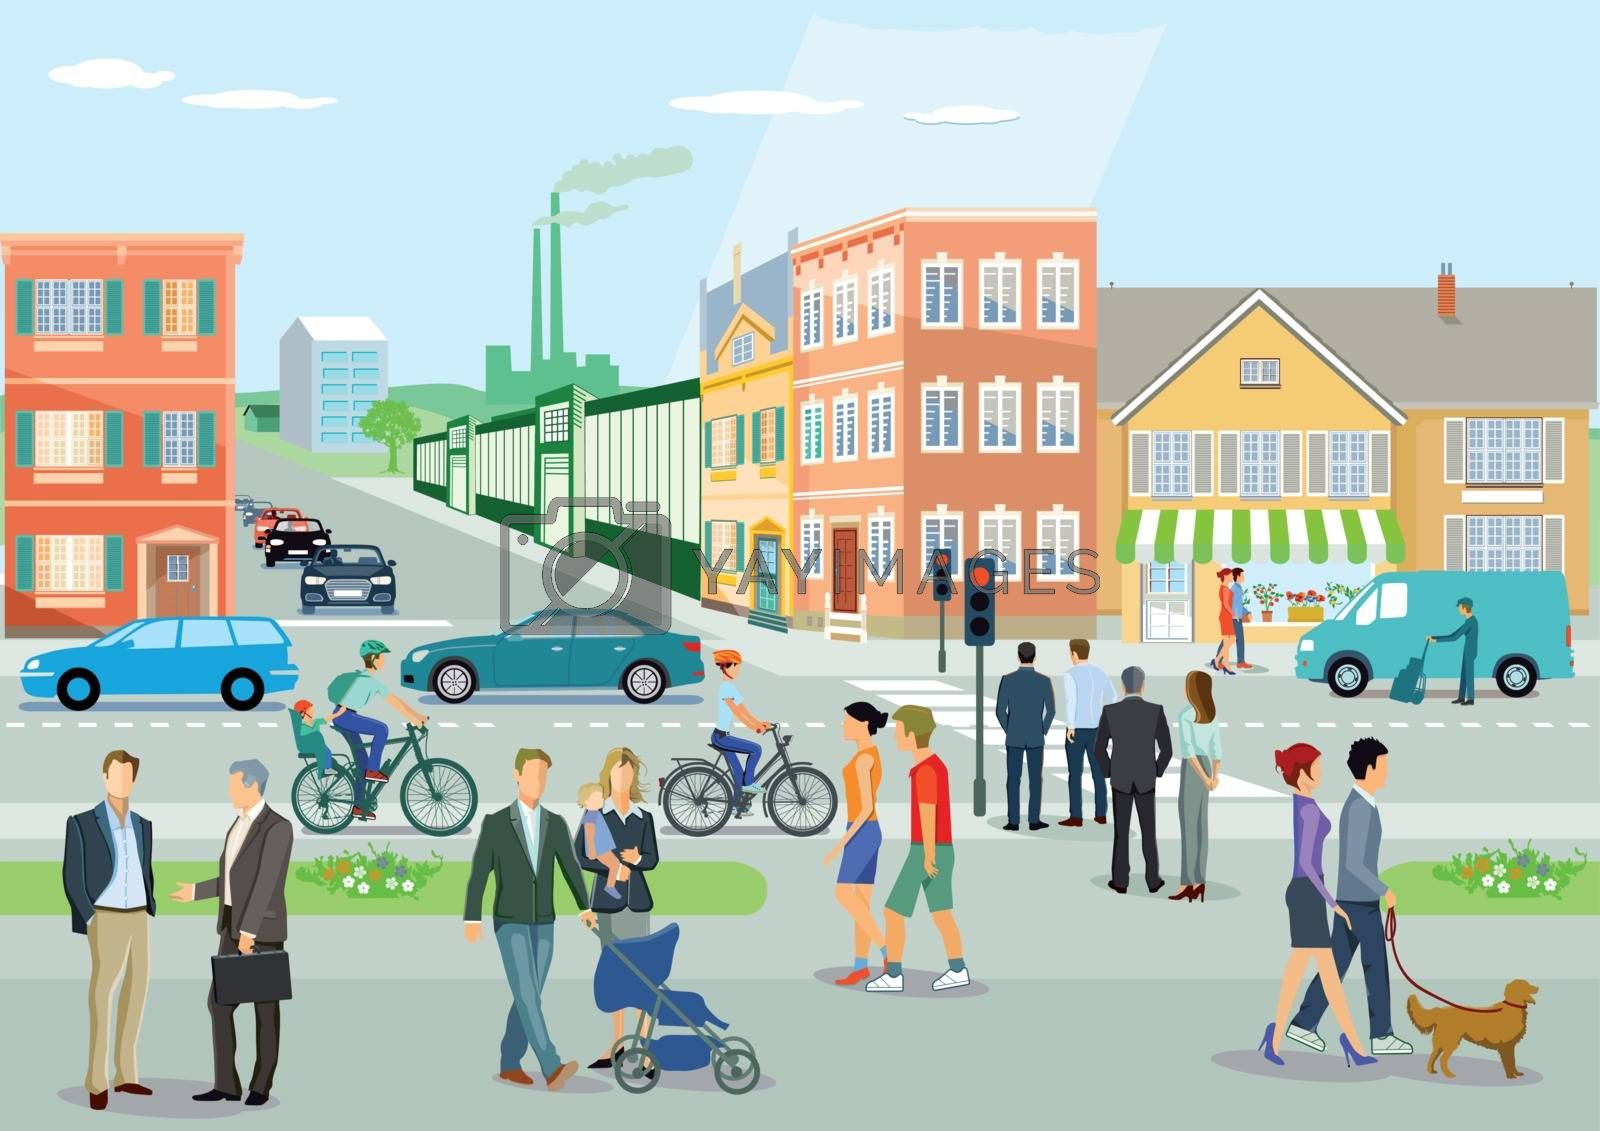 City with road traffic, cyclists and pedestrians, illustration